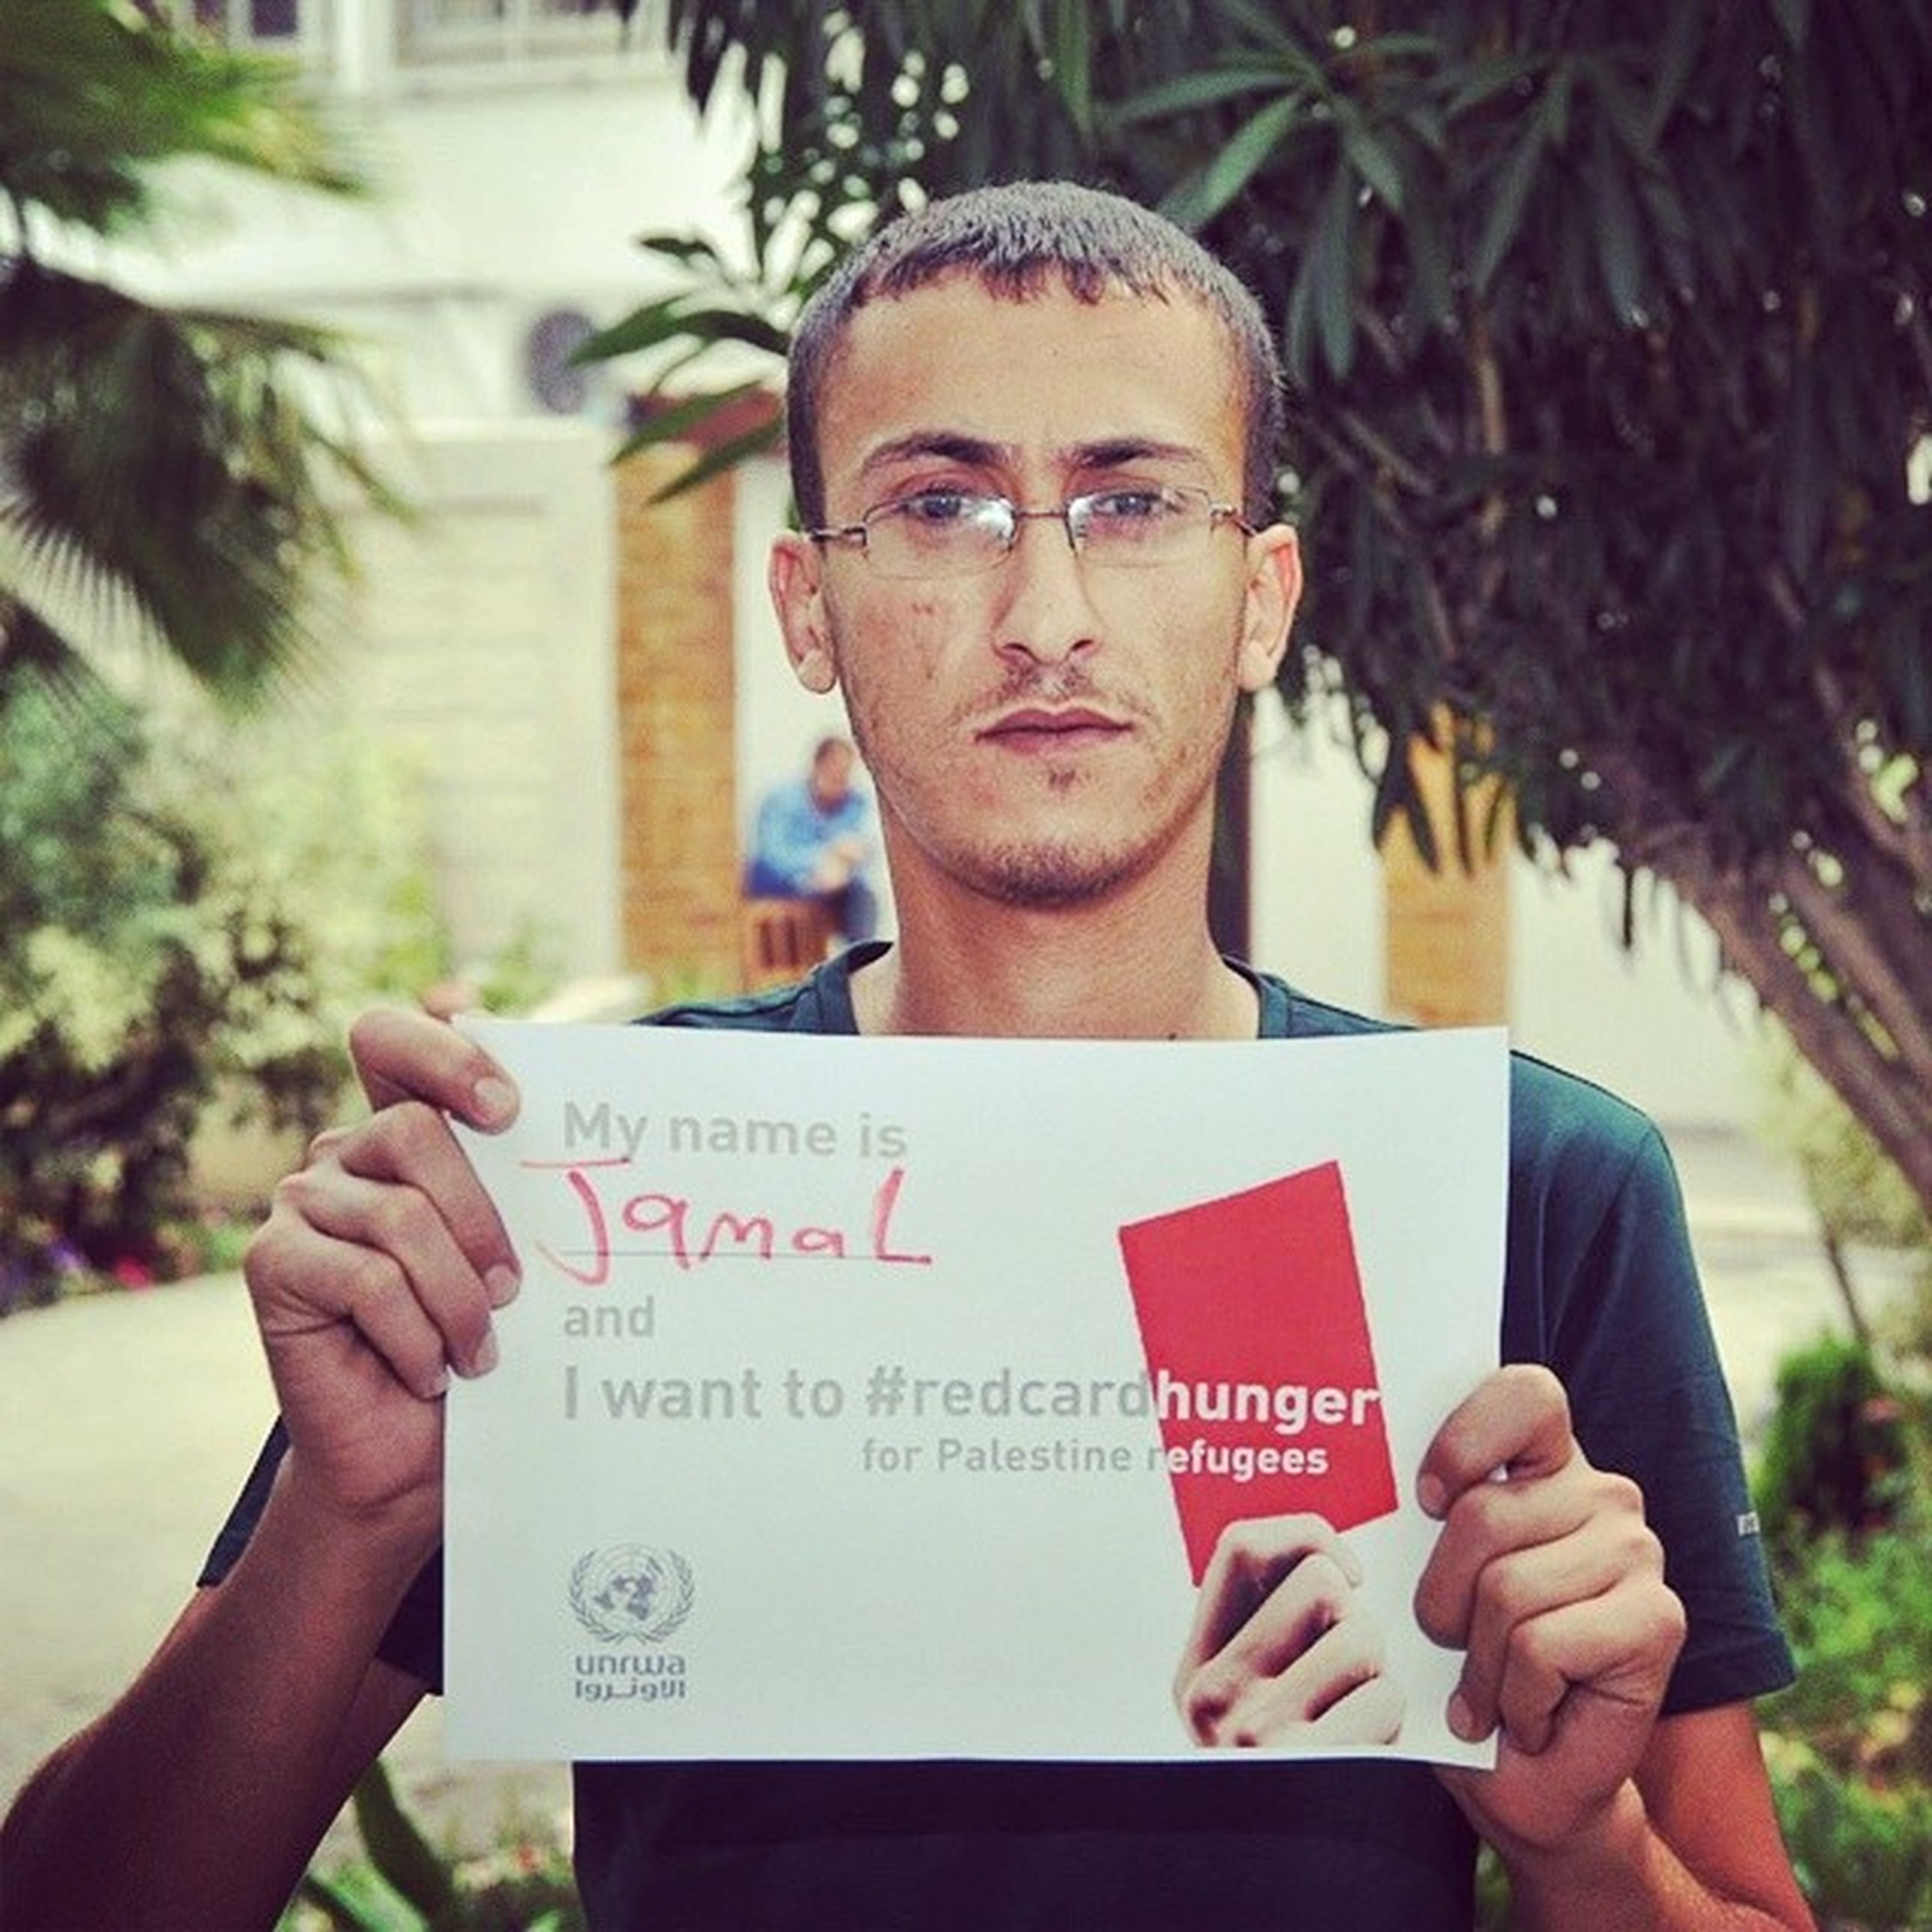 I want to Red_card_hunger for palastine refugees